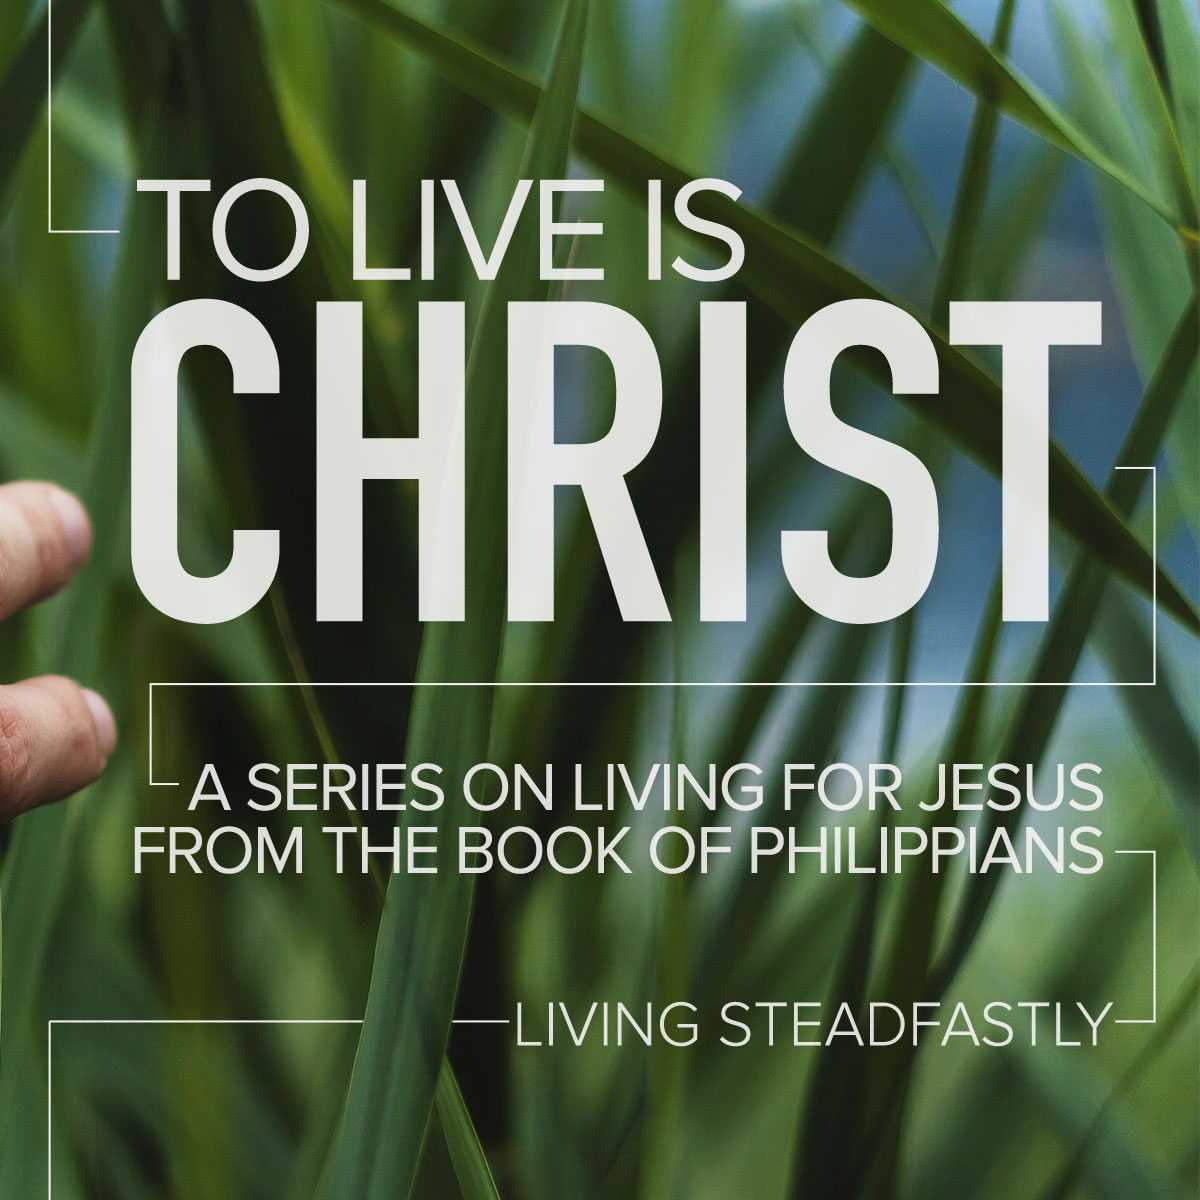 To Live is CHRIST. Part 5: Living Steadfastly